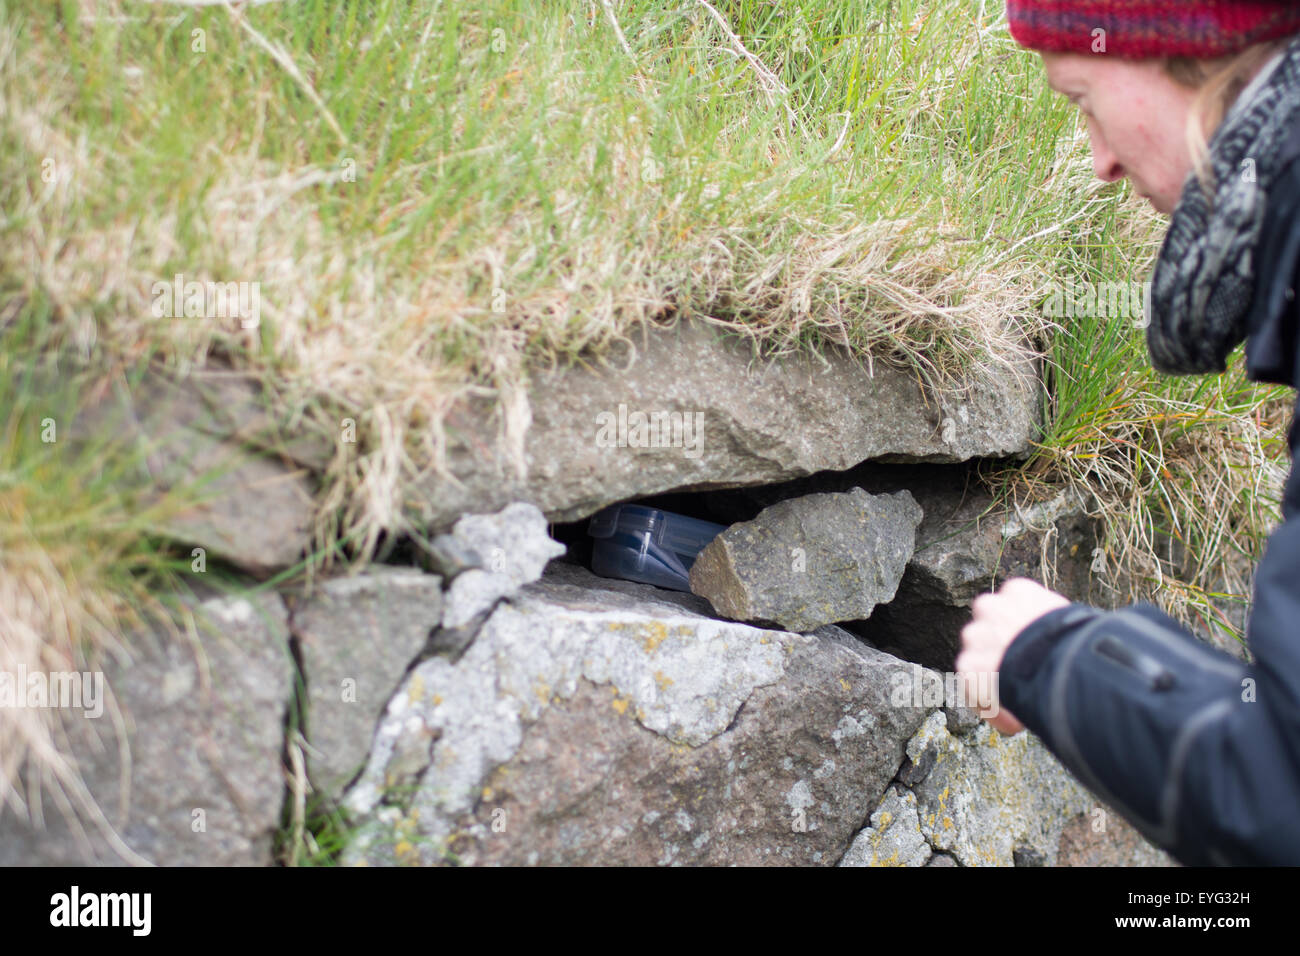 Young woman finding a geocache in a plastic box in a stone wall - Stock Image